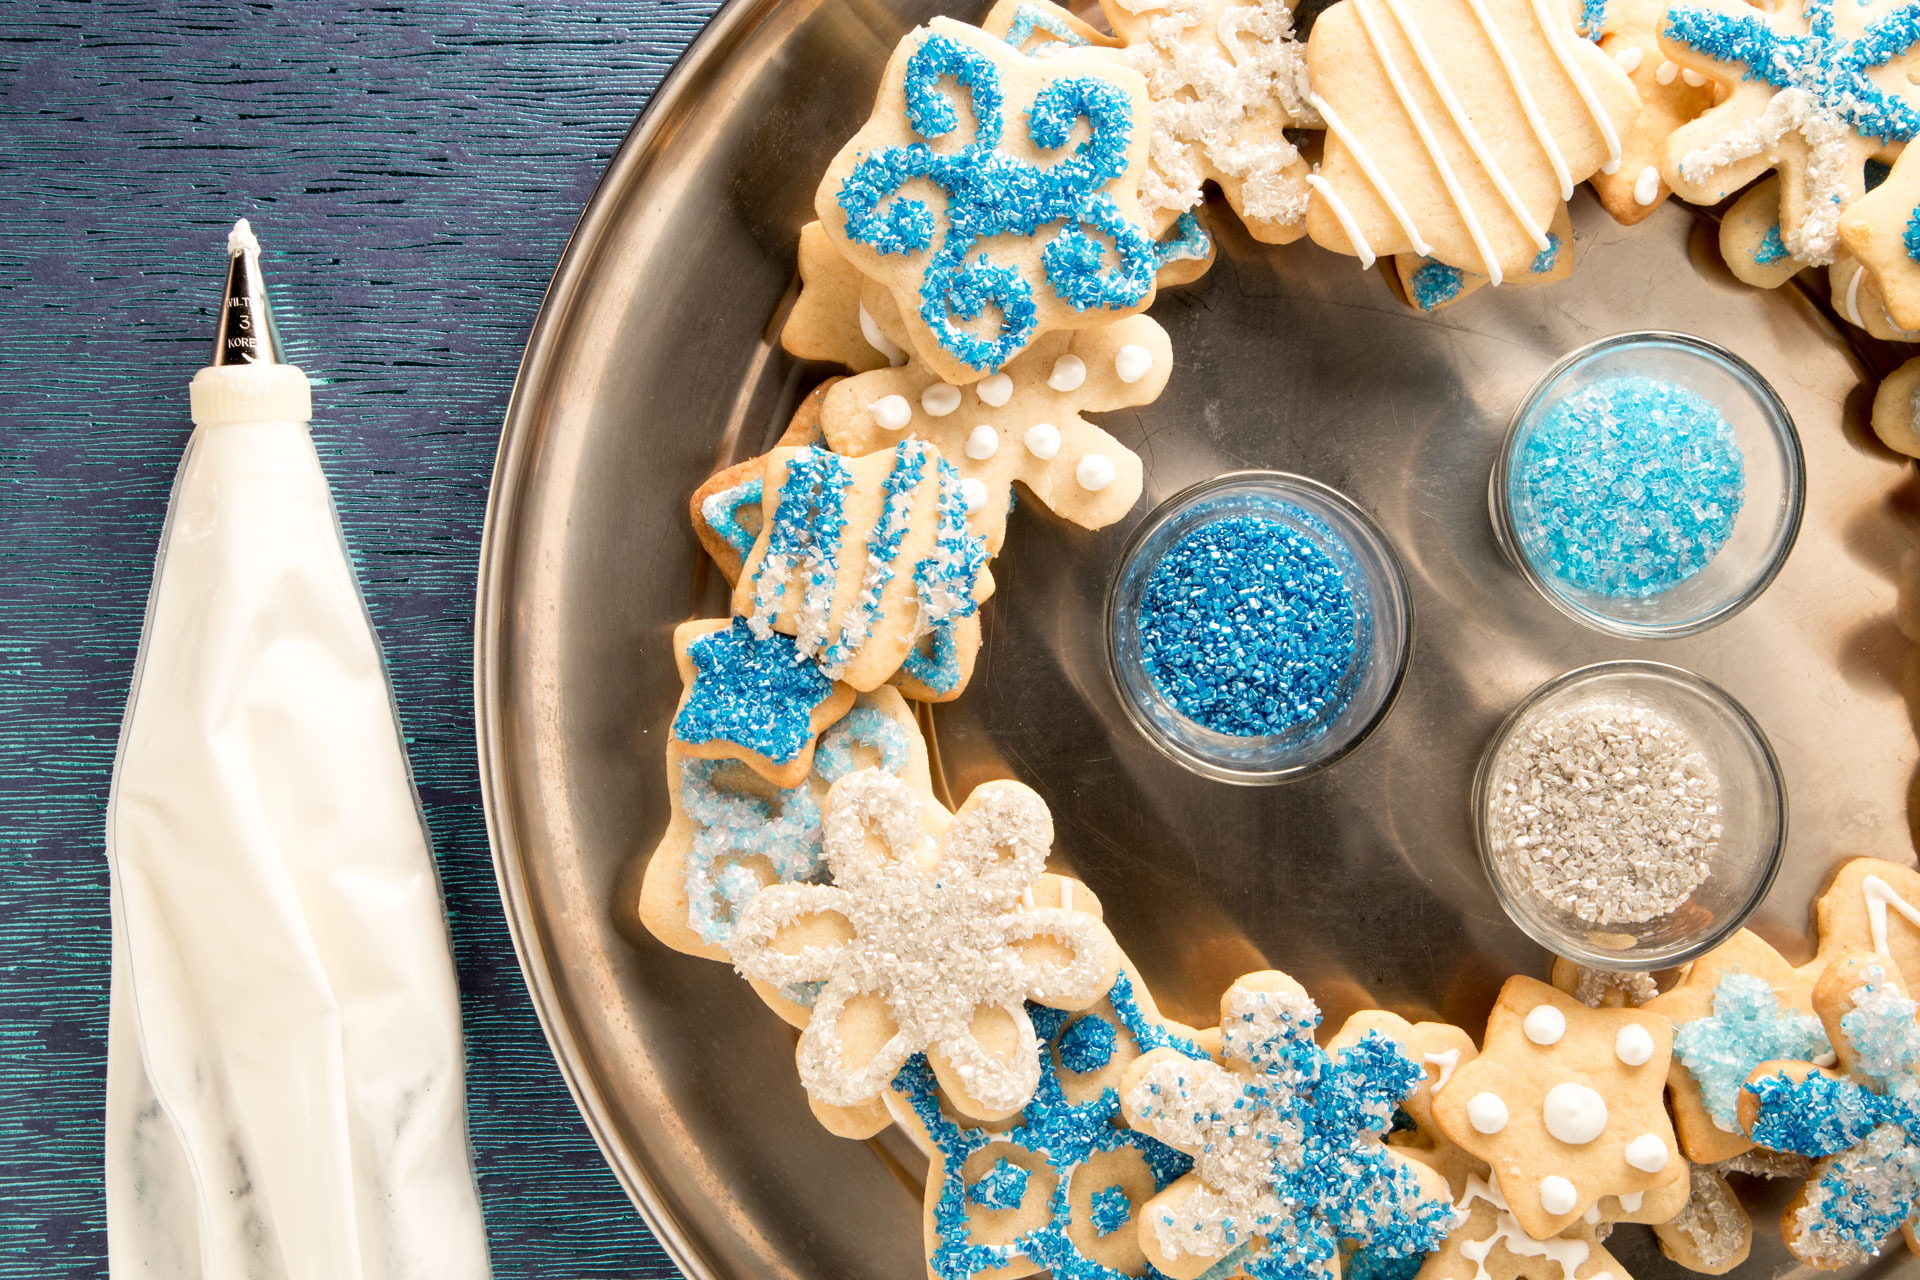 Cardamom Shortbread Snowflakes are a great rolled dough cookie that can be used for decorating OR eating. We prefer both, so we turned our cookies into a wreath (the ones we didn't eat first, of course).